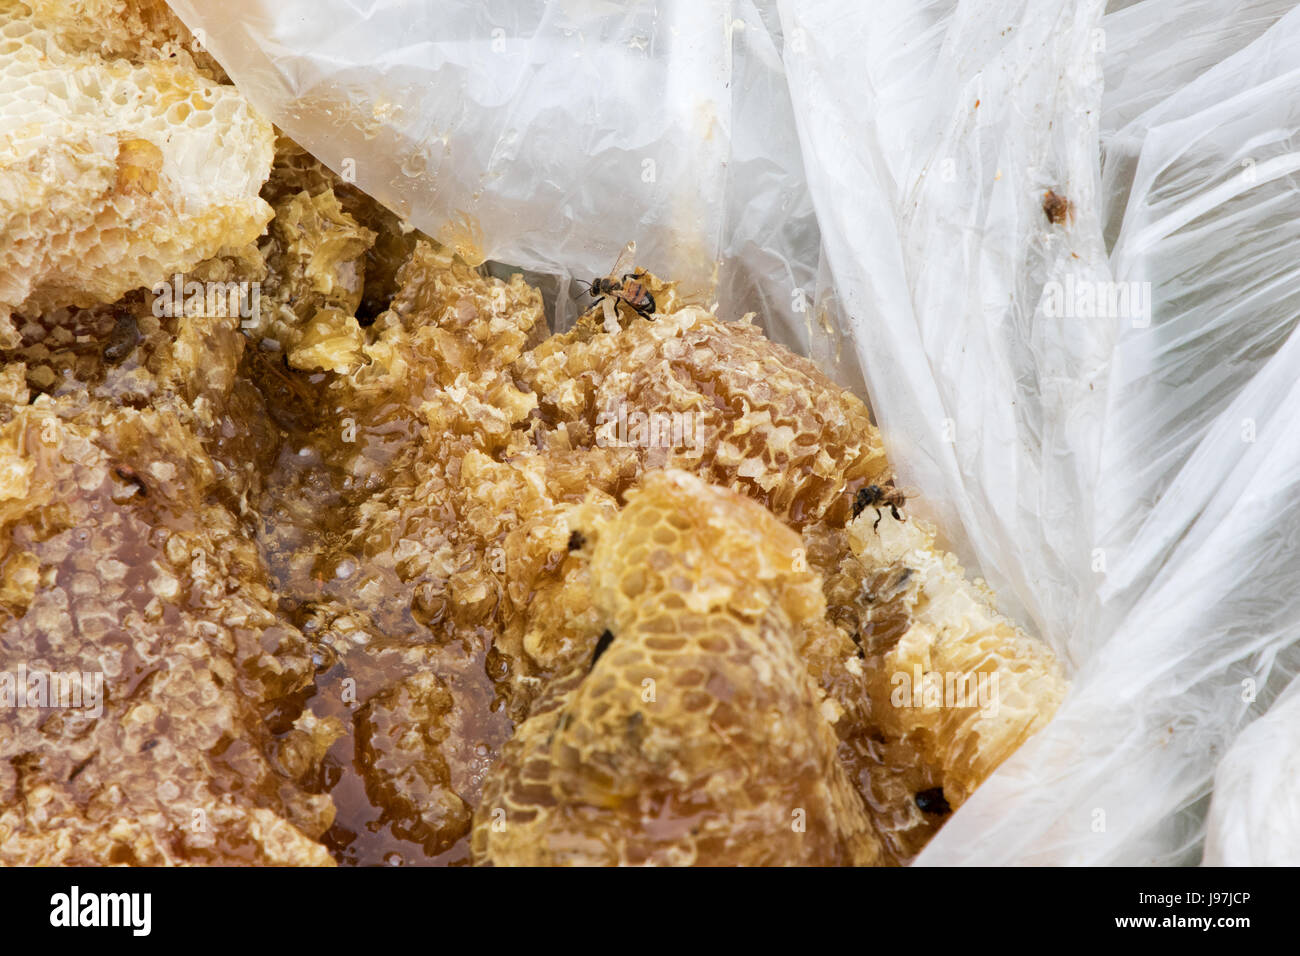 This a small honeycomb removed from the attic of a residential home in Los Angeles, California USA. - Stock Image